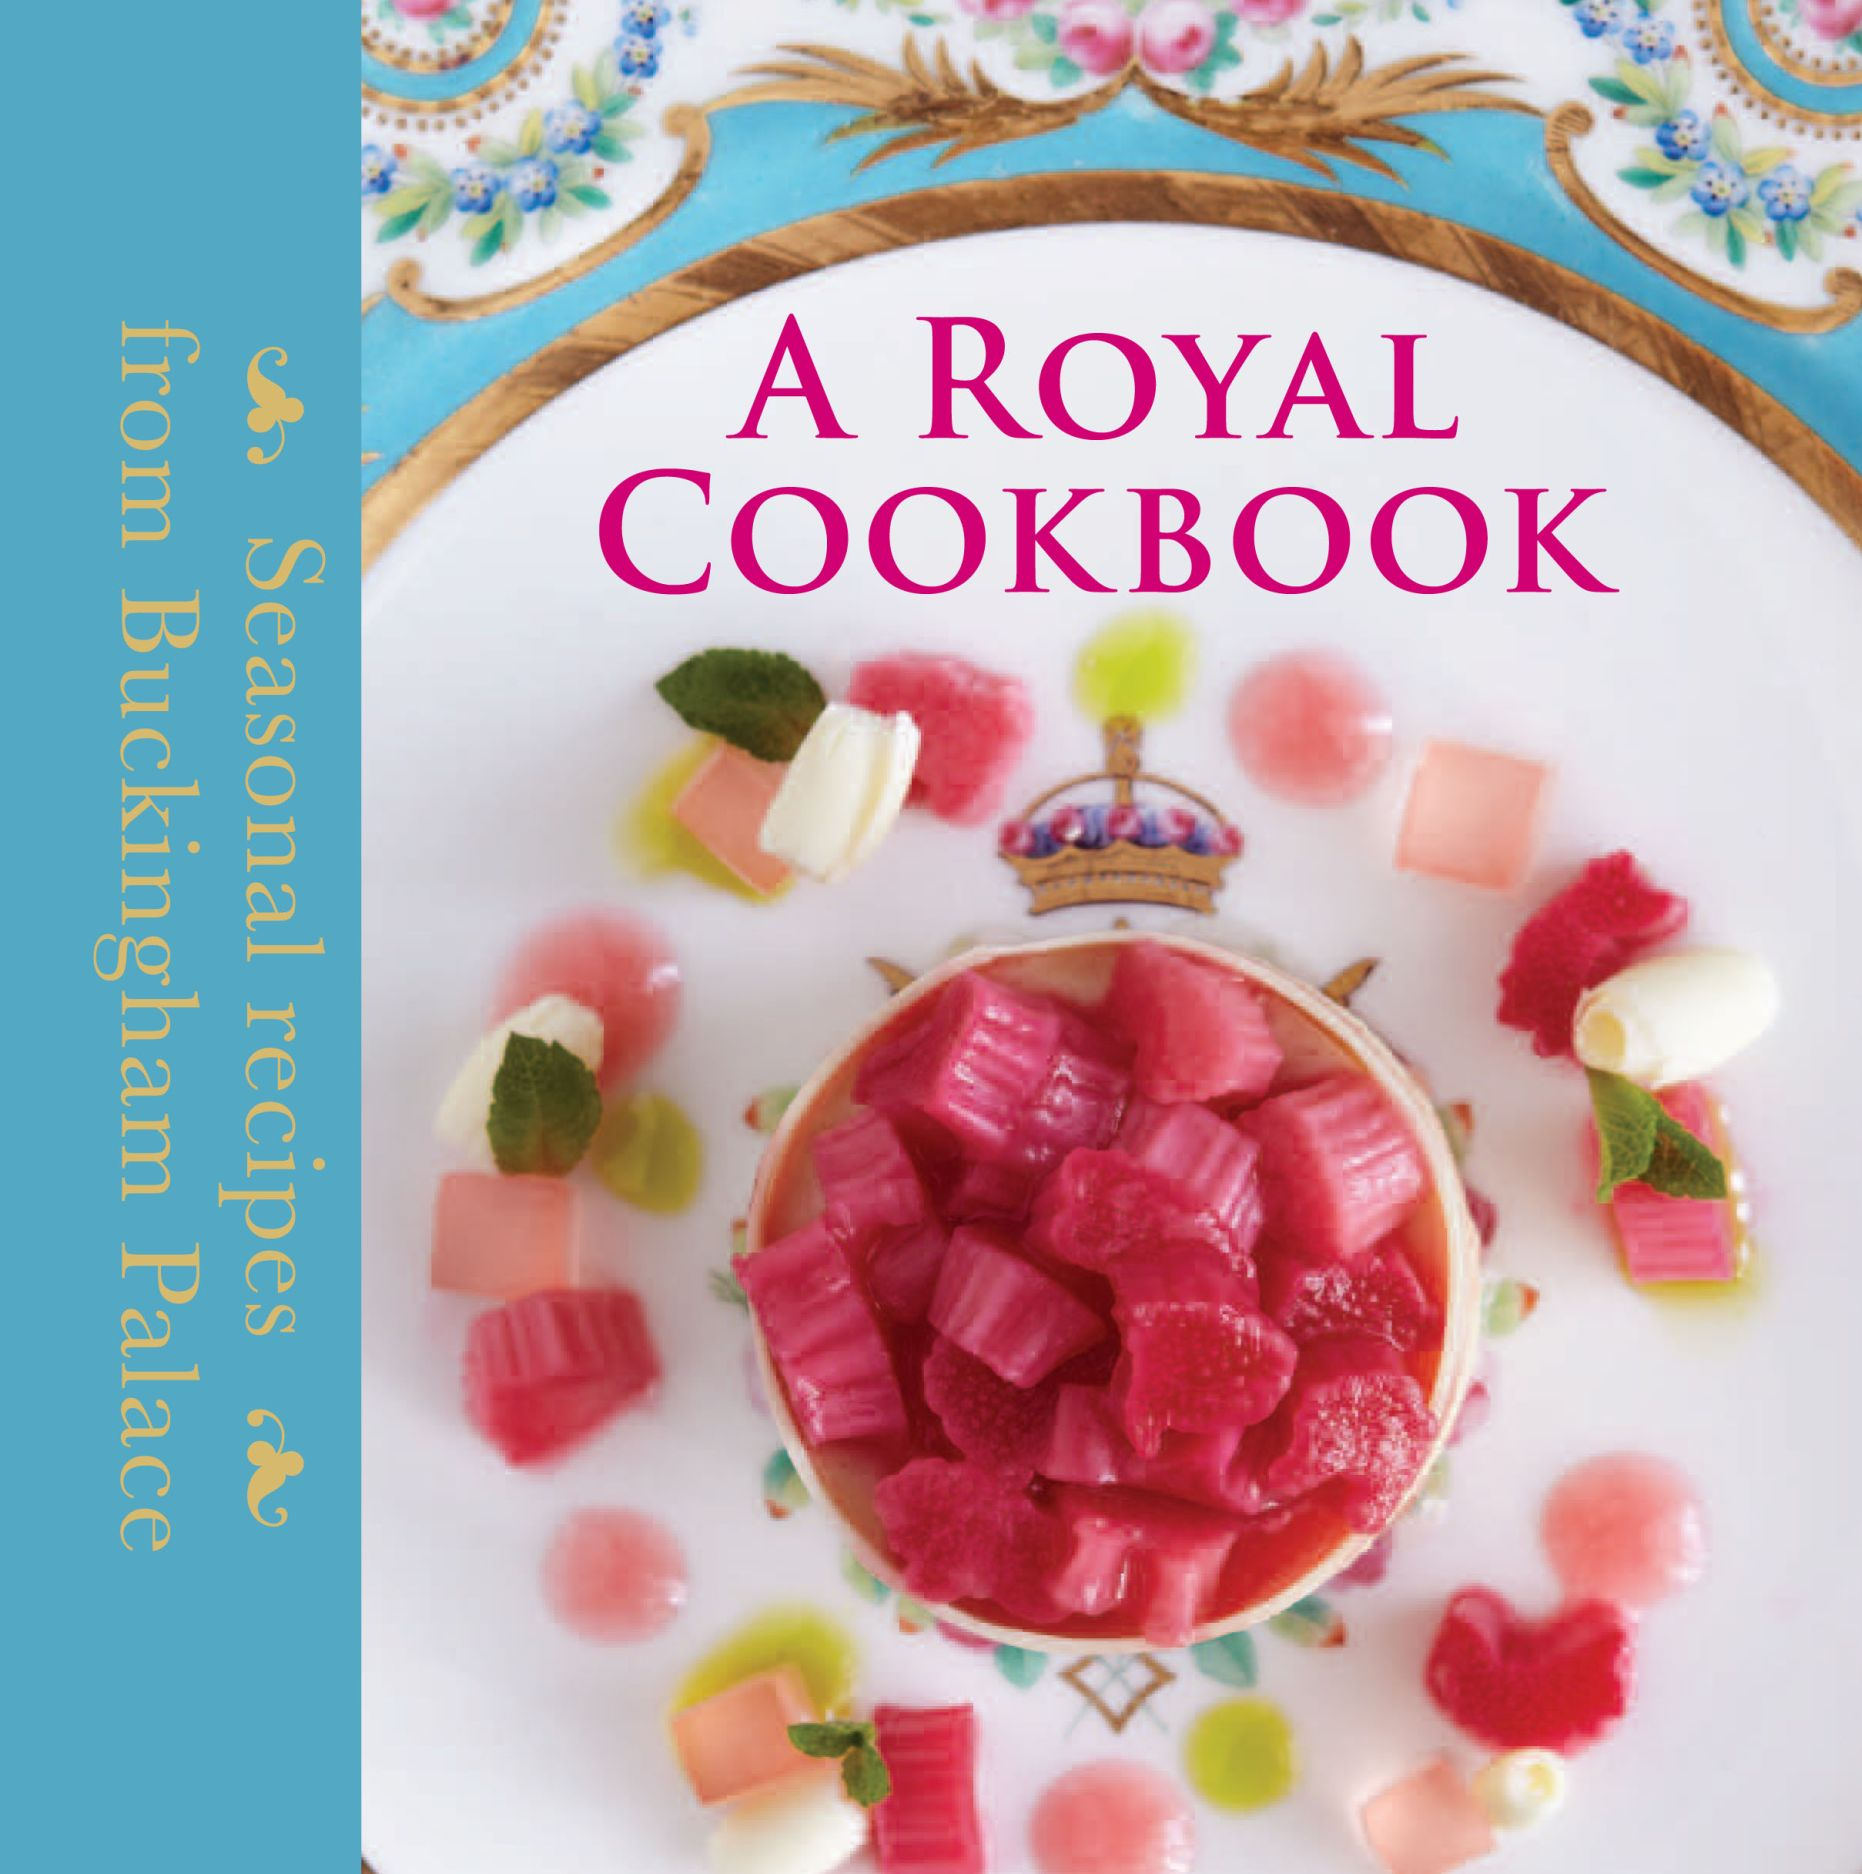 A Royal Cookbook